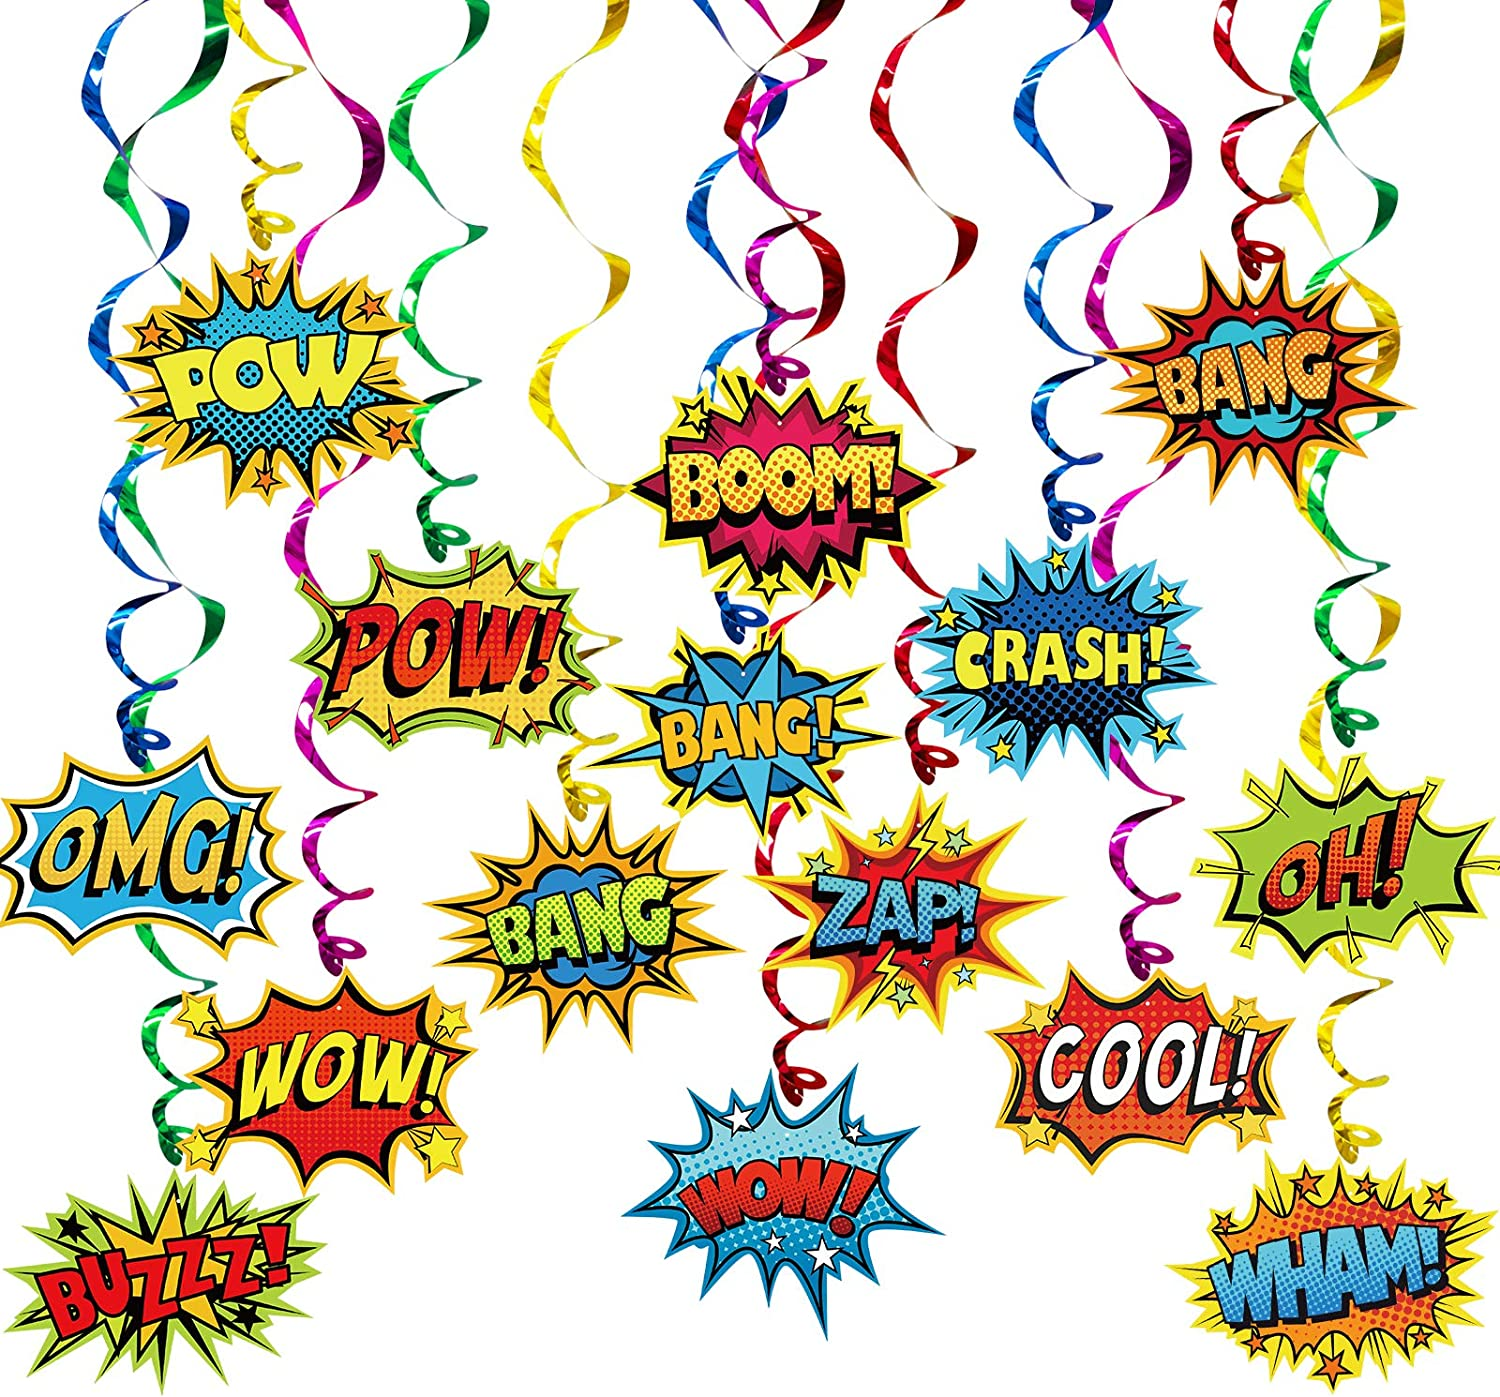 Superhero Party Supplies Decorations 30 Pack Foil Ceiling Hanging Swirls Streams Party Banner Decor for Kids Adults Fashion Hero Birthday Celebrating Party Events Baby Shower Room Wall Decor 30 Counts